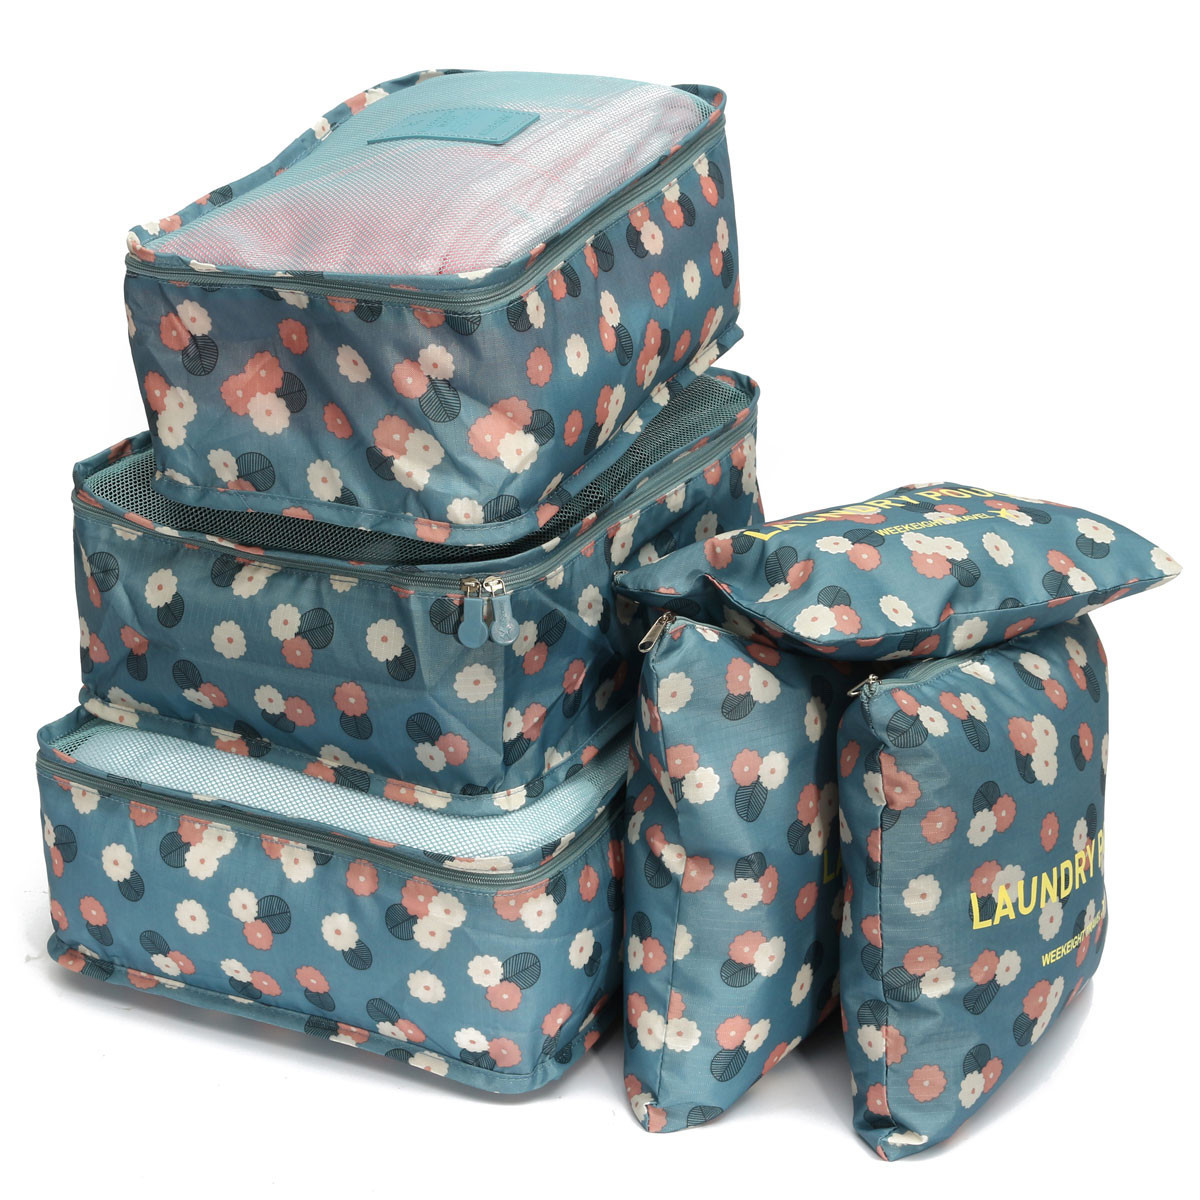 6Pcs-Clothes-Underwear-Socks-Packing-Cube-Travel-Luggage-Organizer-Storage-Bag